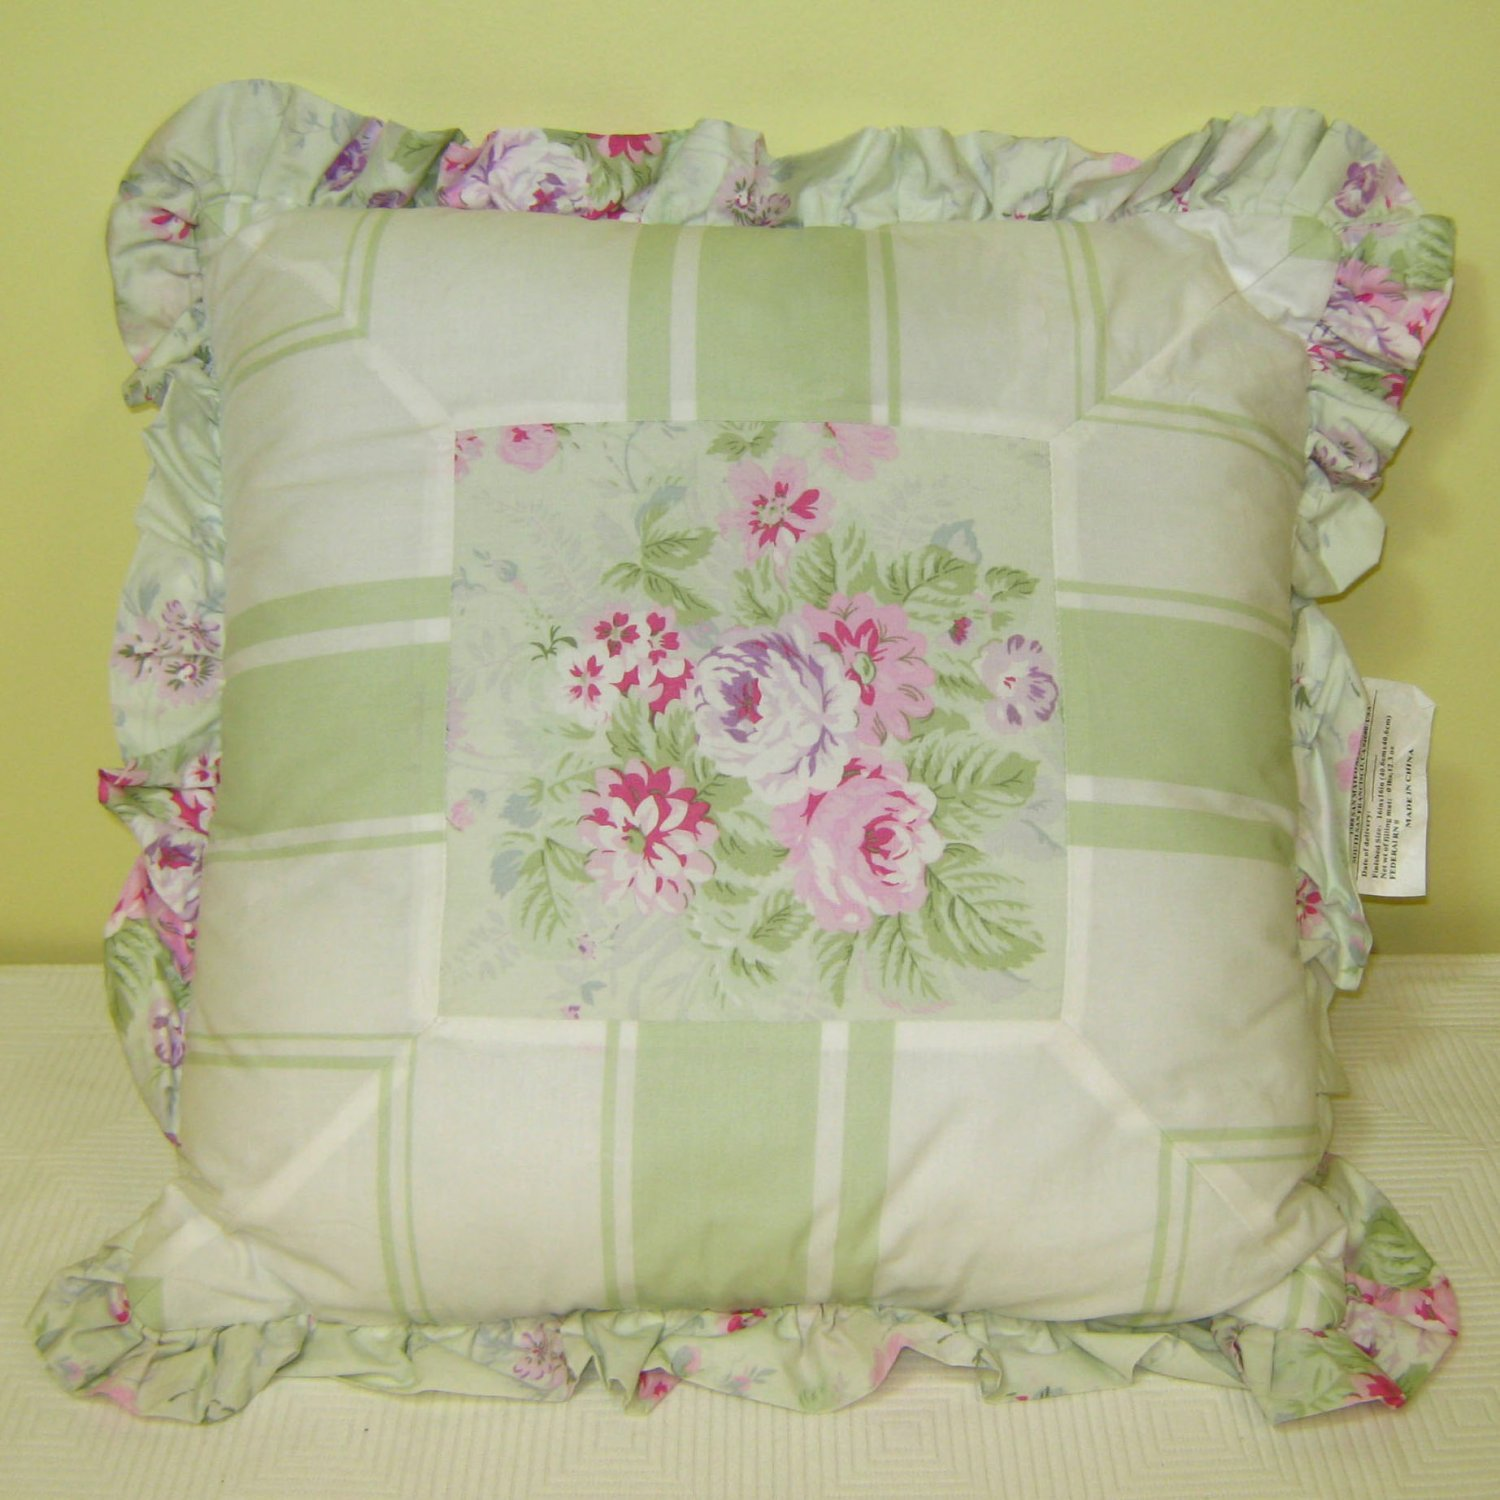 Simply Shabby Chic Pillows : Simply Shabby Chic BRAMBLE ROSE Decorative Throw Pillows Green 16 X 16